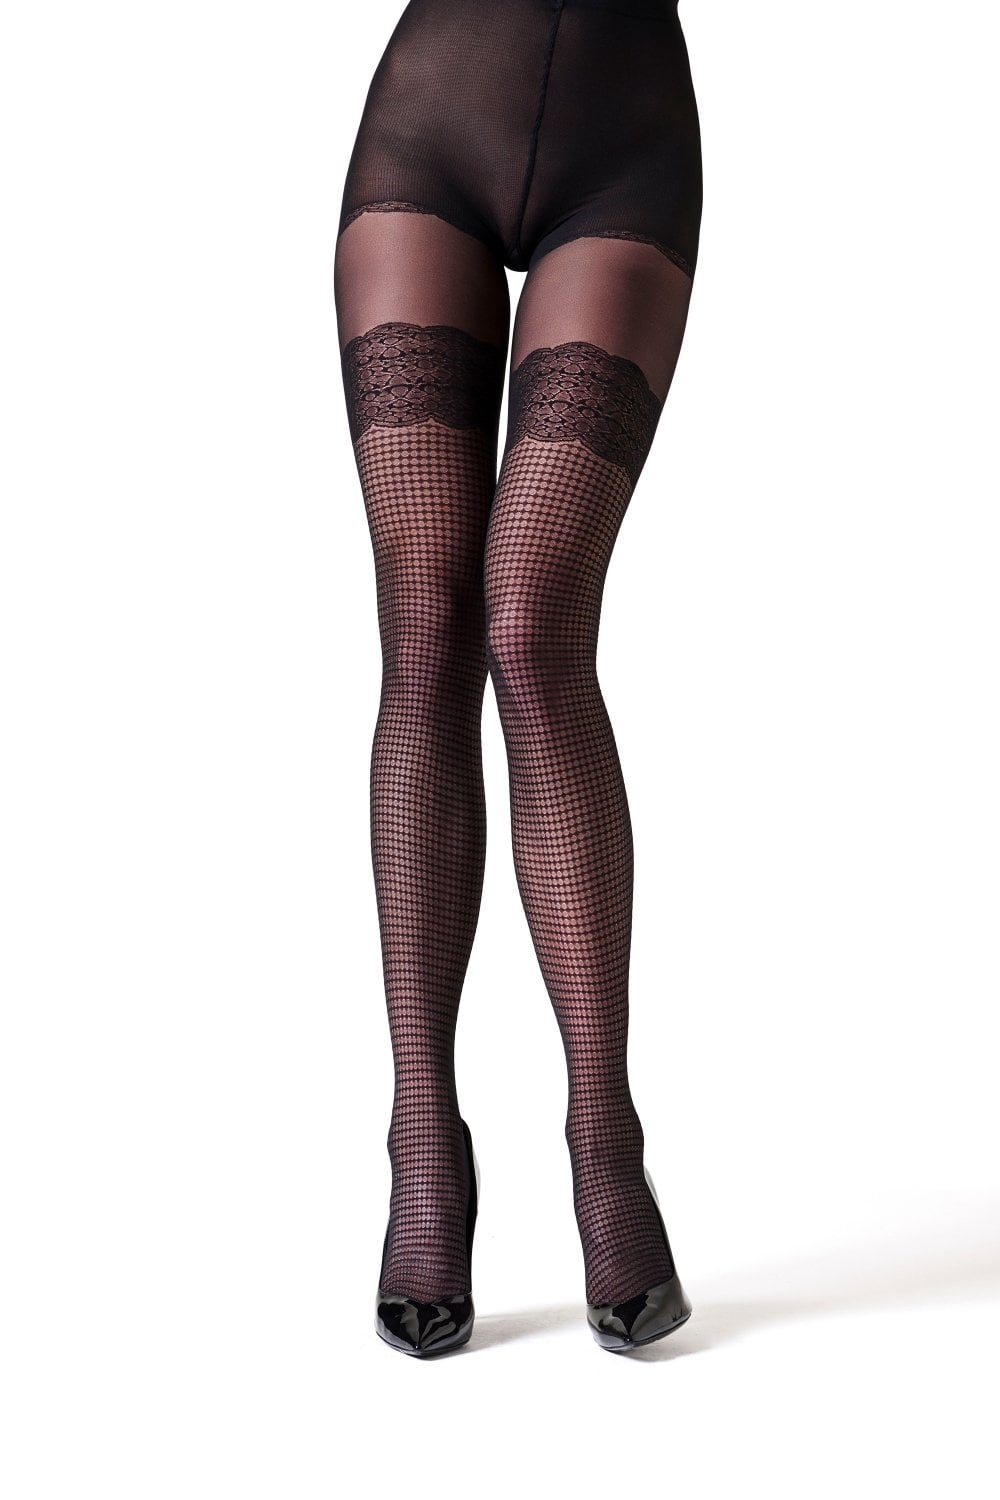 buying new premium selection huge selection of La Perla Checked Tights | Patterned Tights at Leglicious